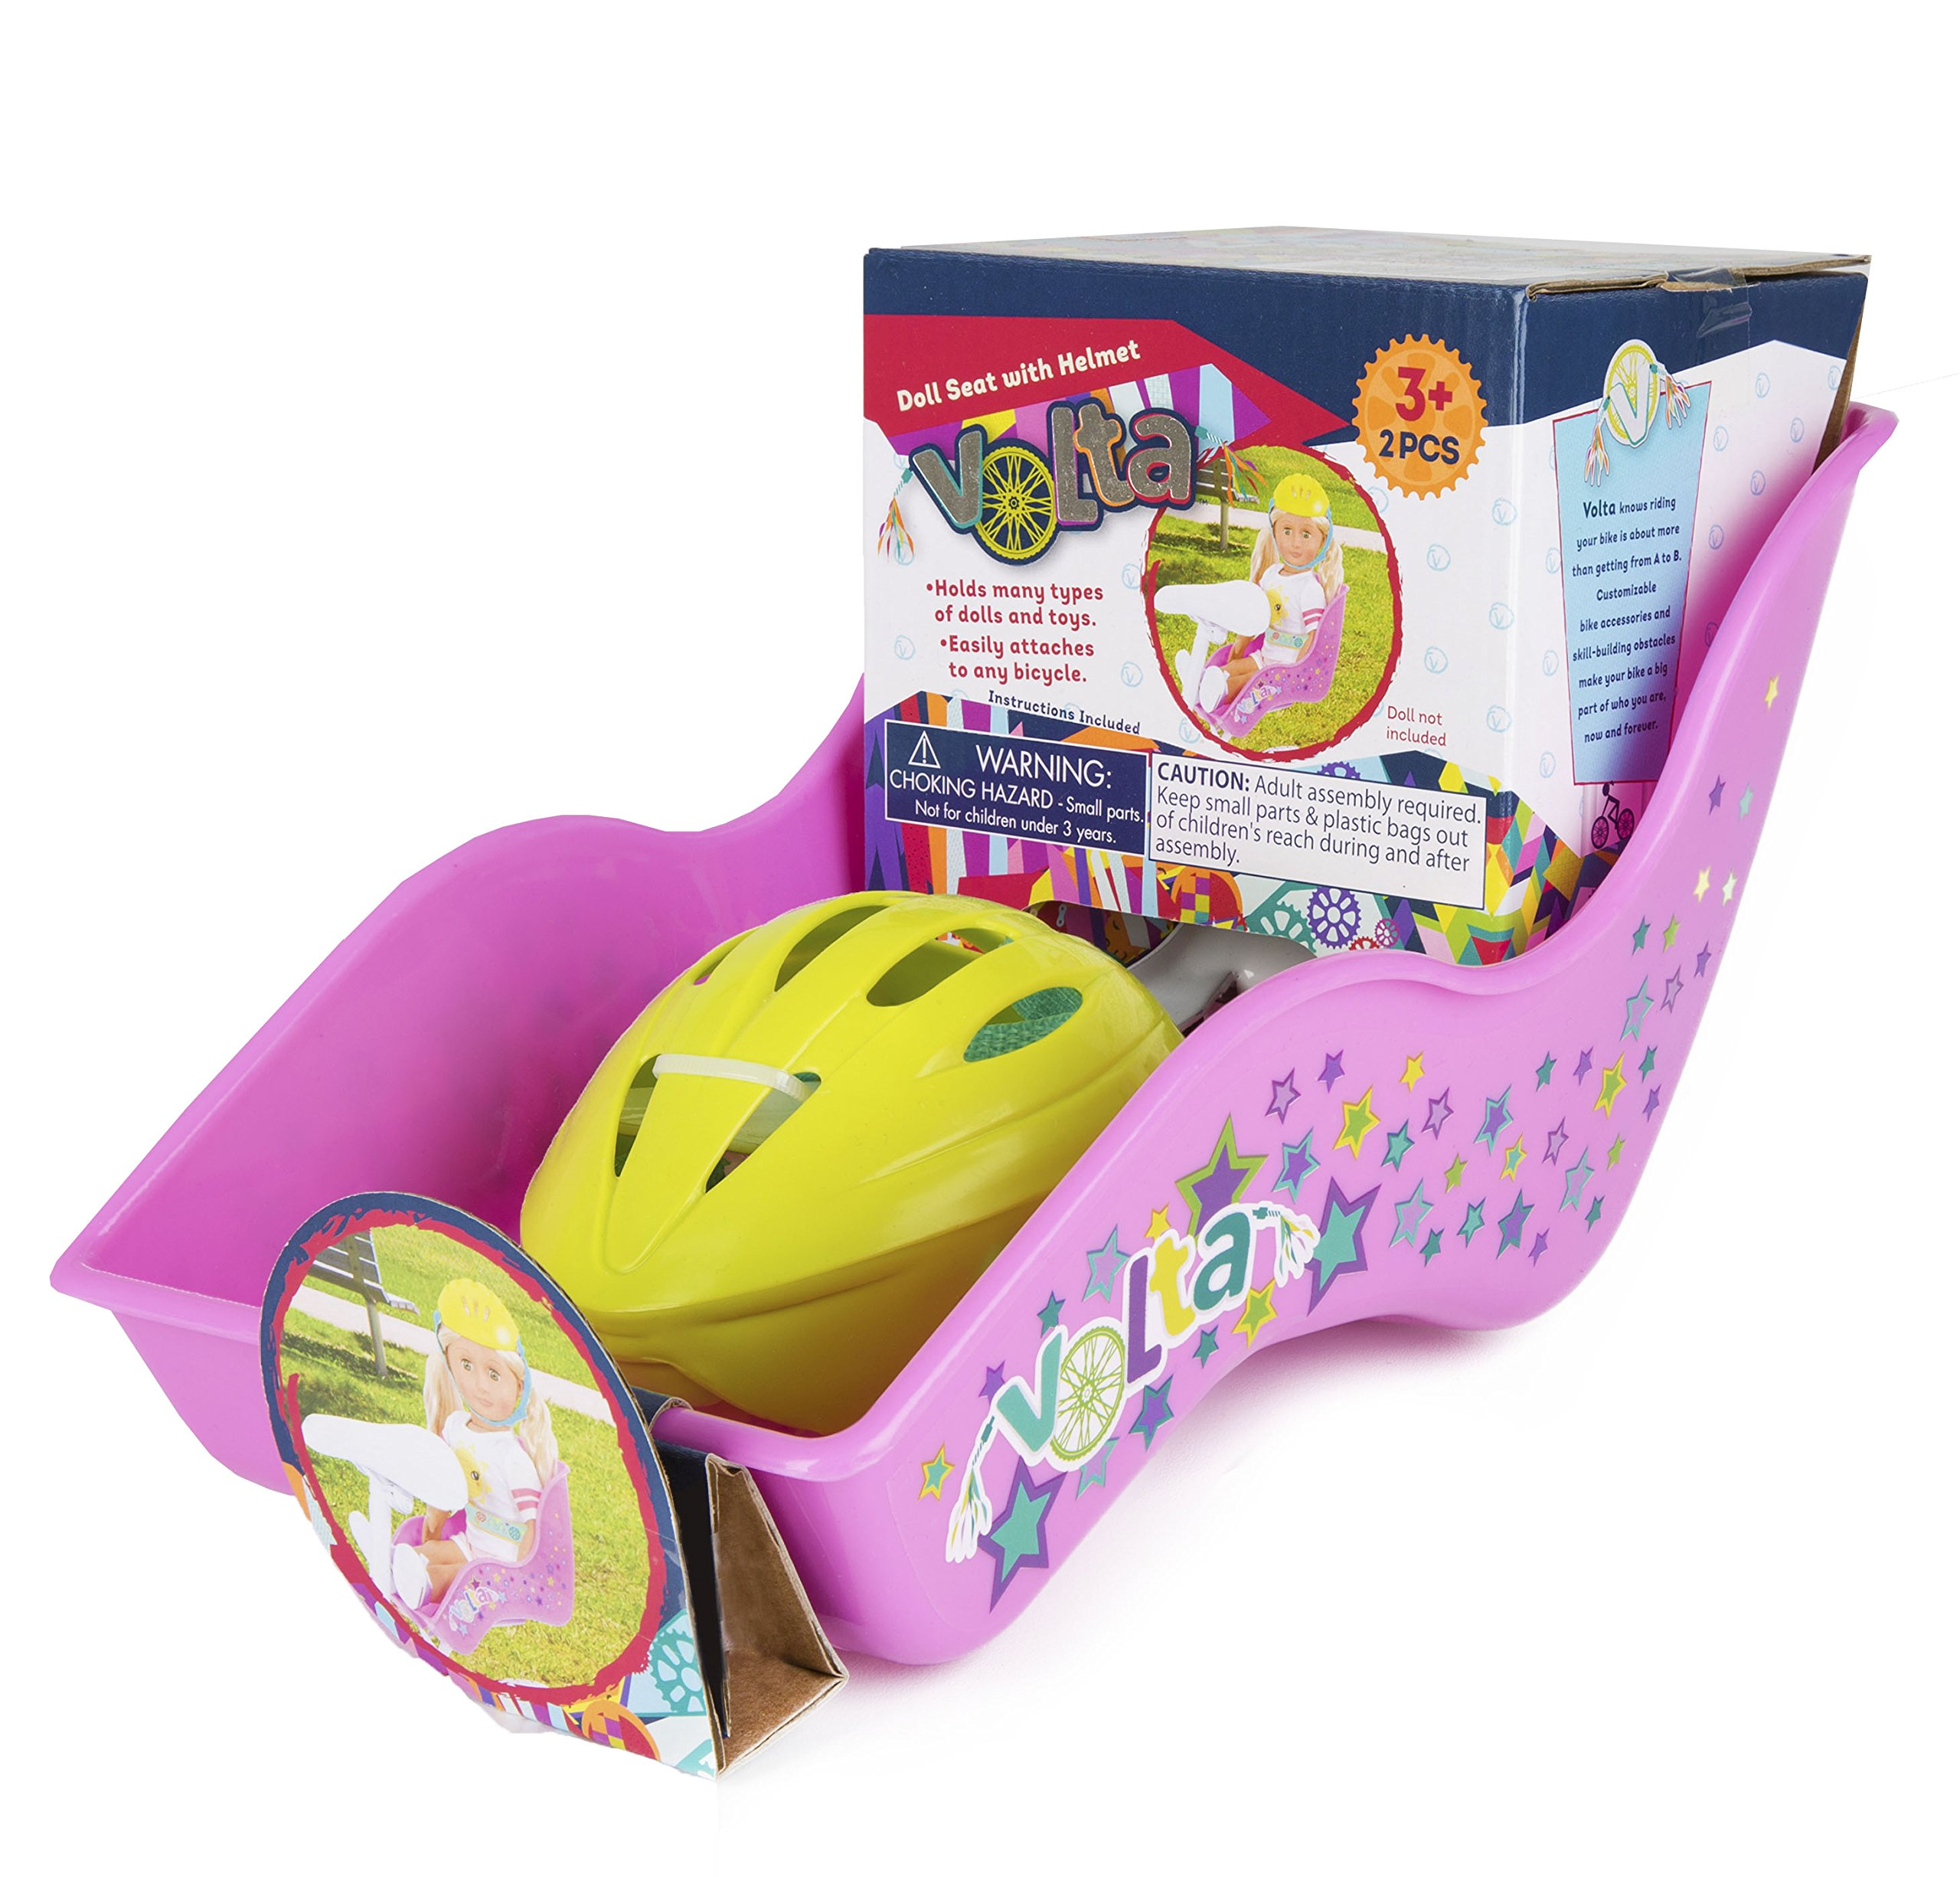 Volta Doll Seat and Helmet – Securely and Safely Carry Your Favorite Doll Wherever You Go – Easily Attaches to Seat Post of Nearly Any Bike – Simple to Remove – For Ages 3 and Up